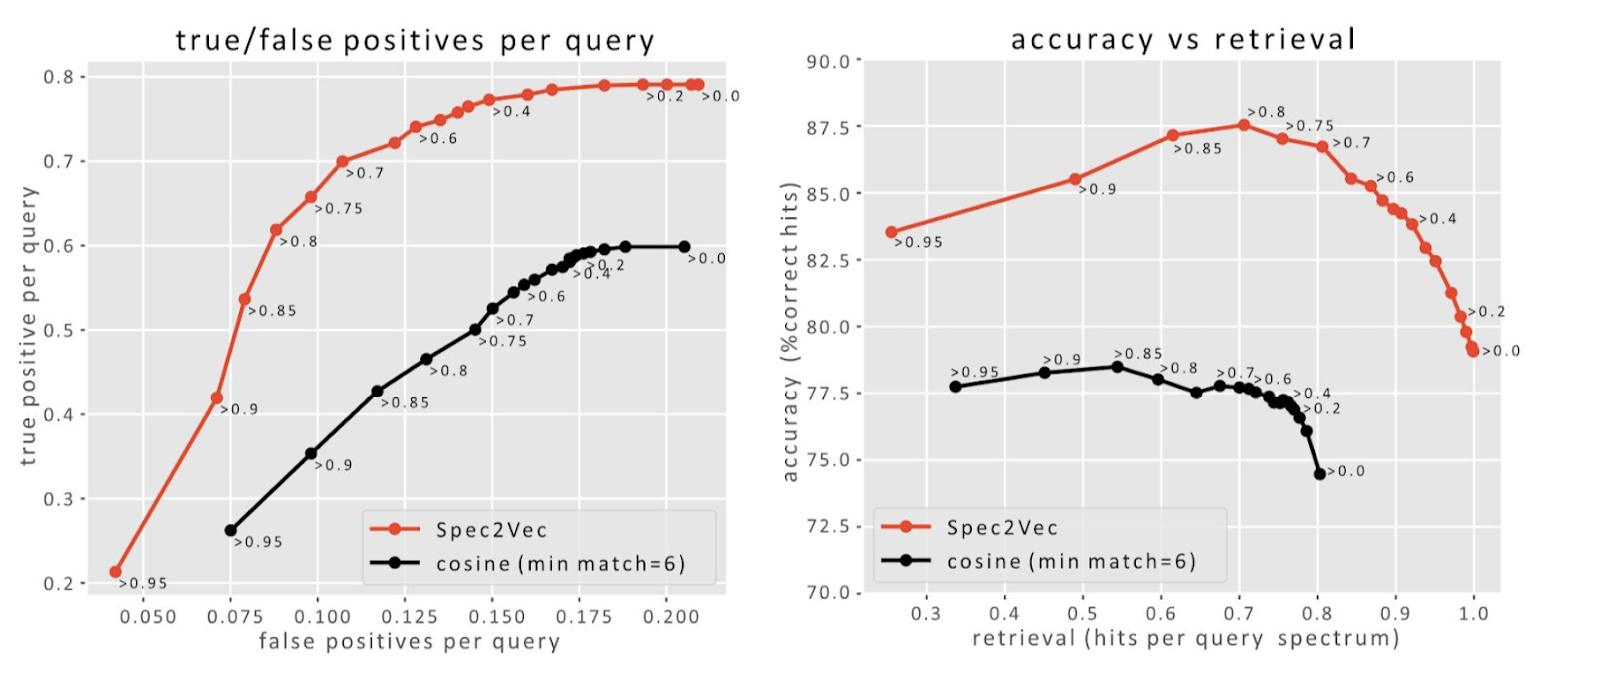 Two charts comparing true-positive and false-positive, as well as accuracy and retrieval, match rates between Spec2Vec and cosine similarity.